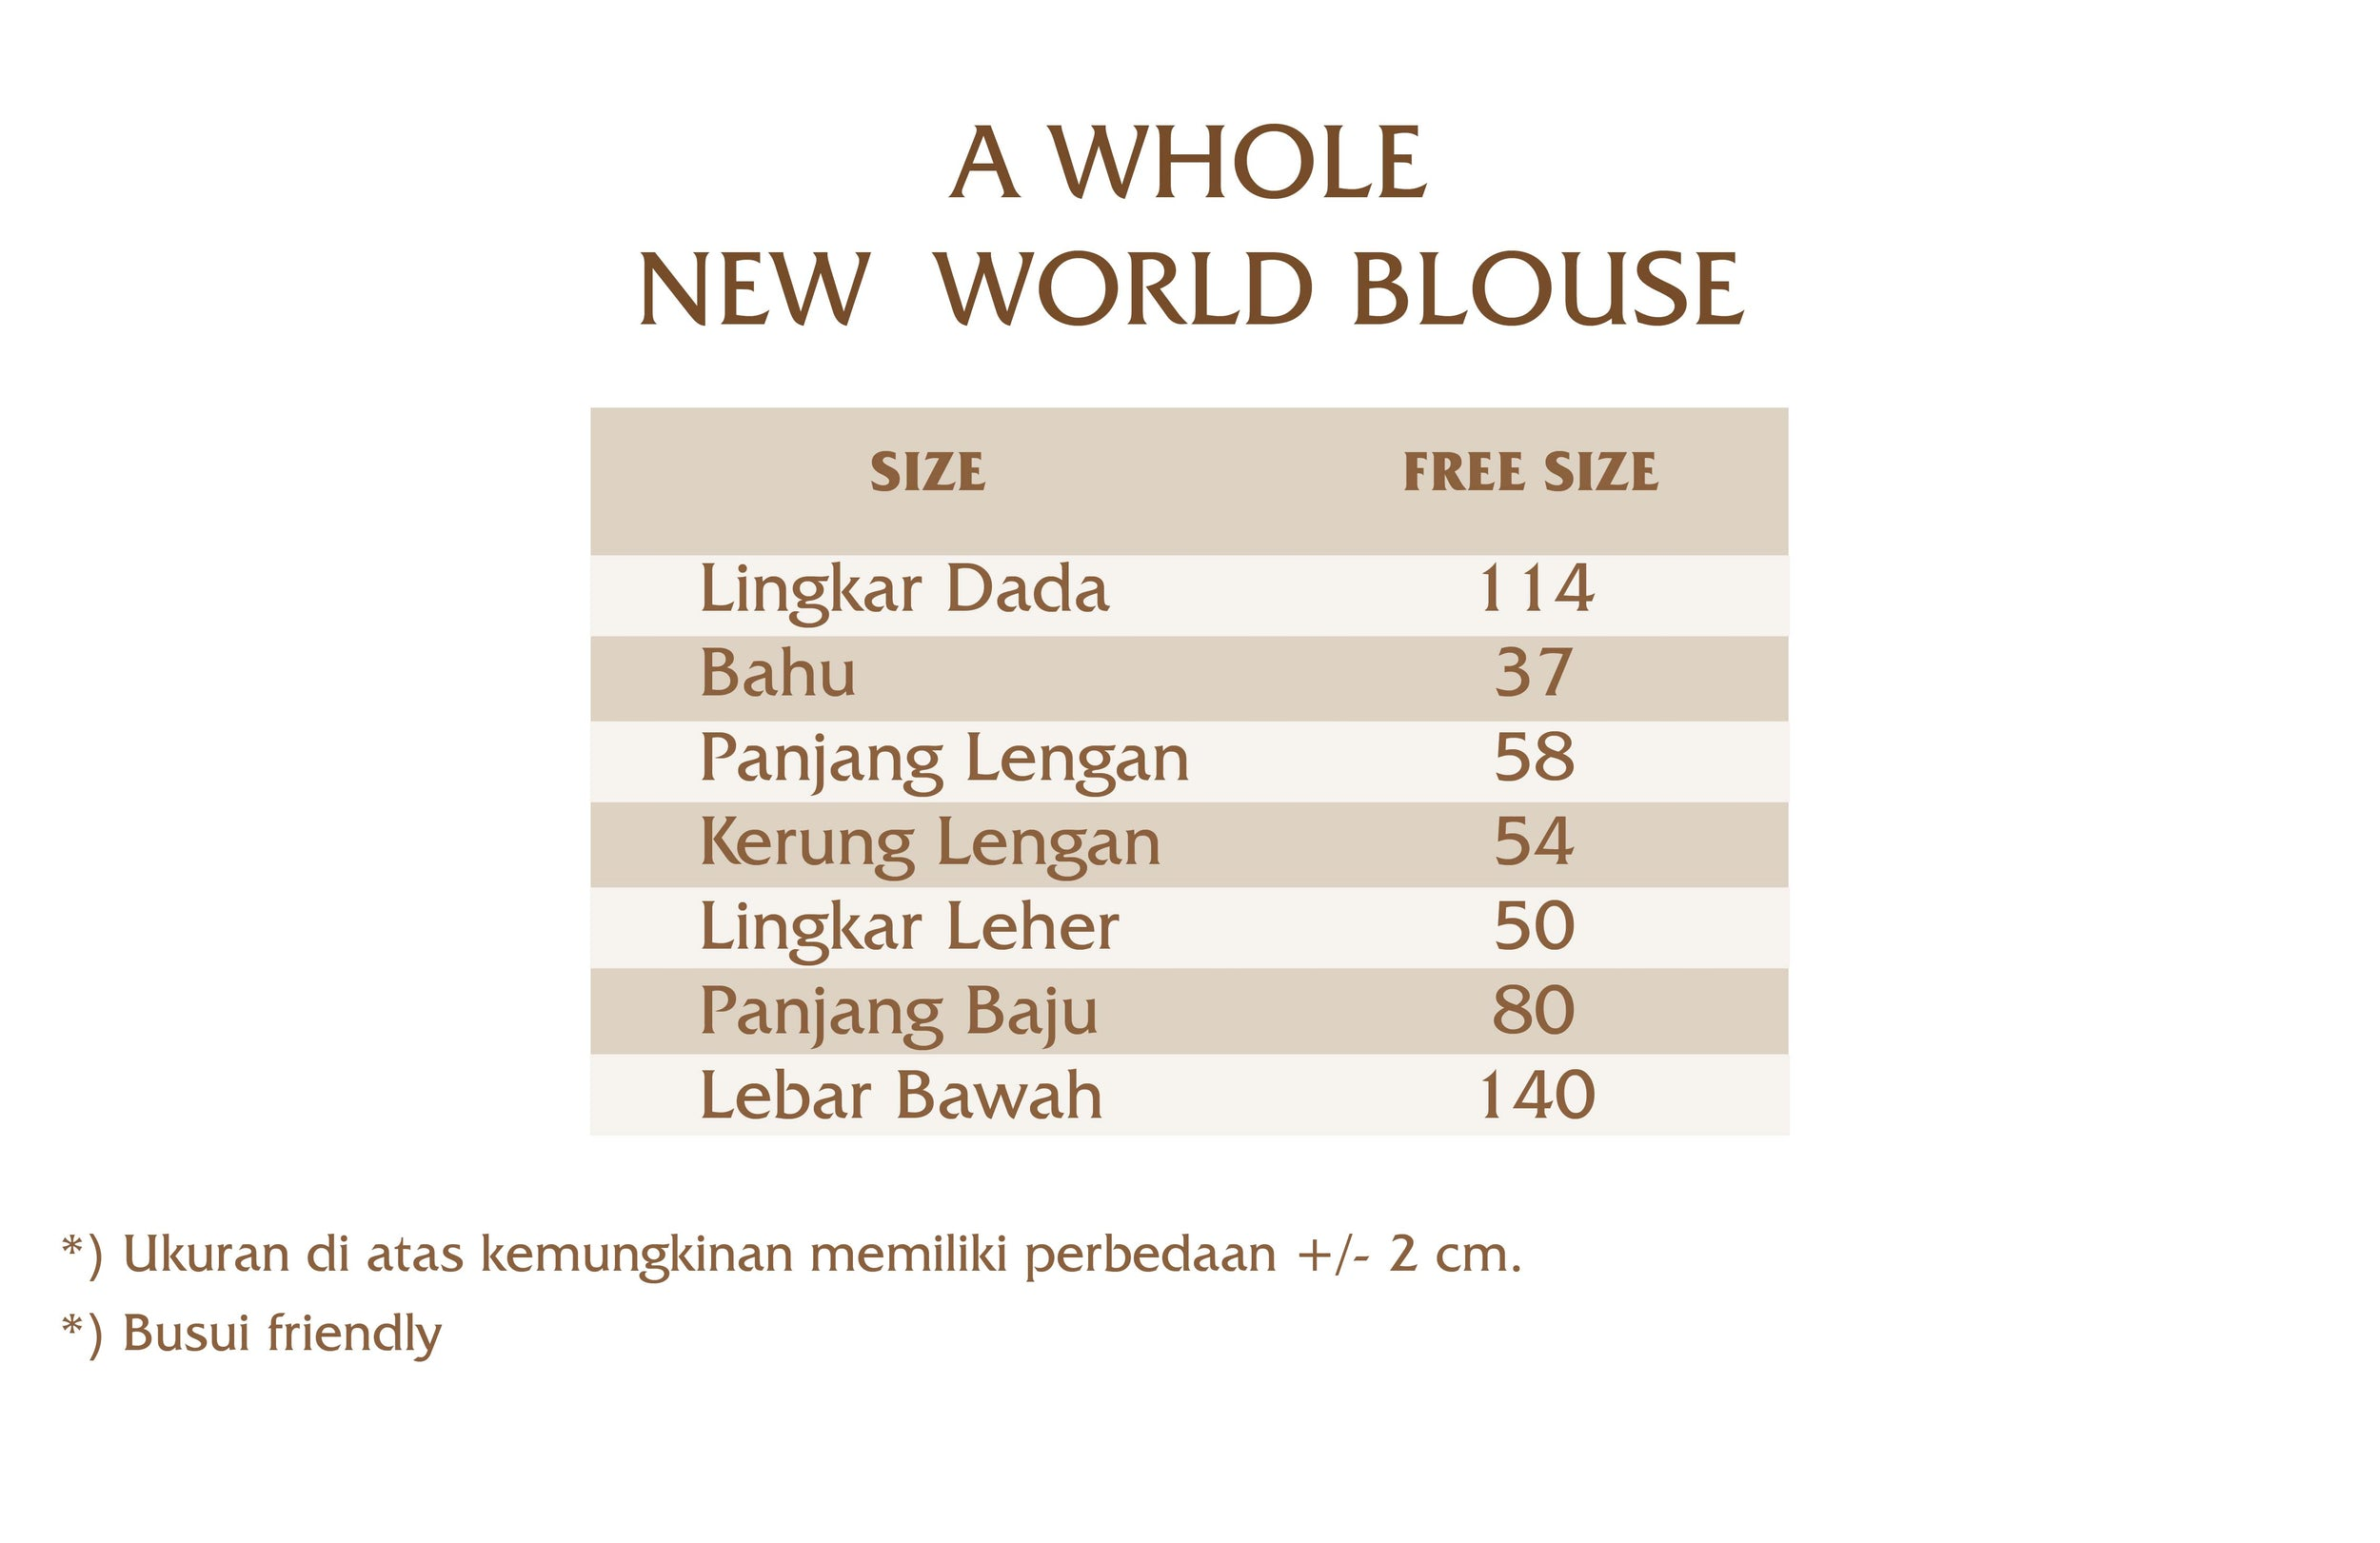 A Whole New World Blouse